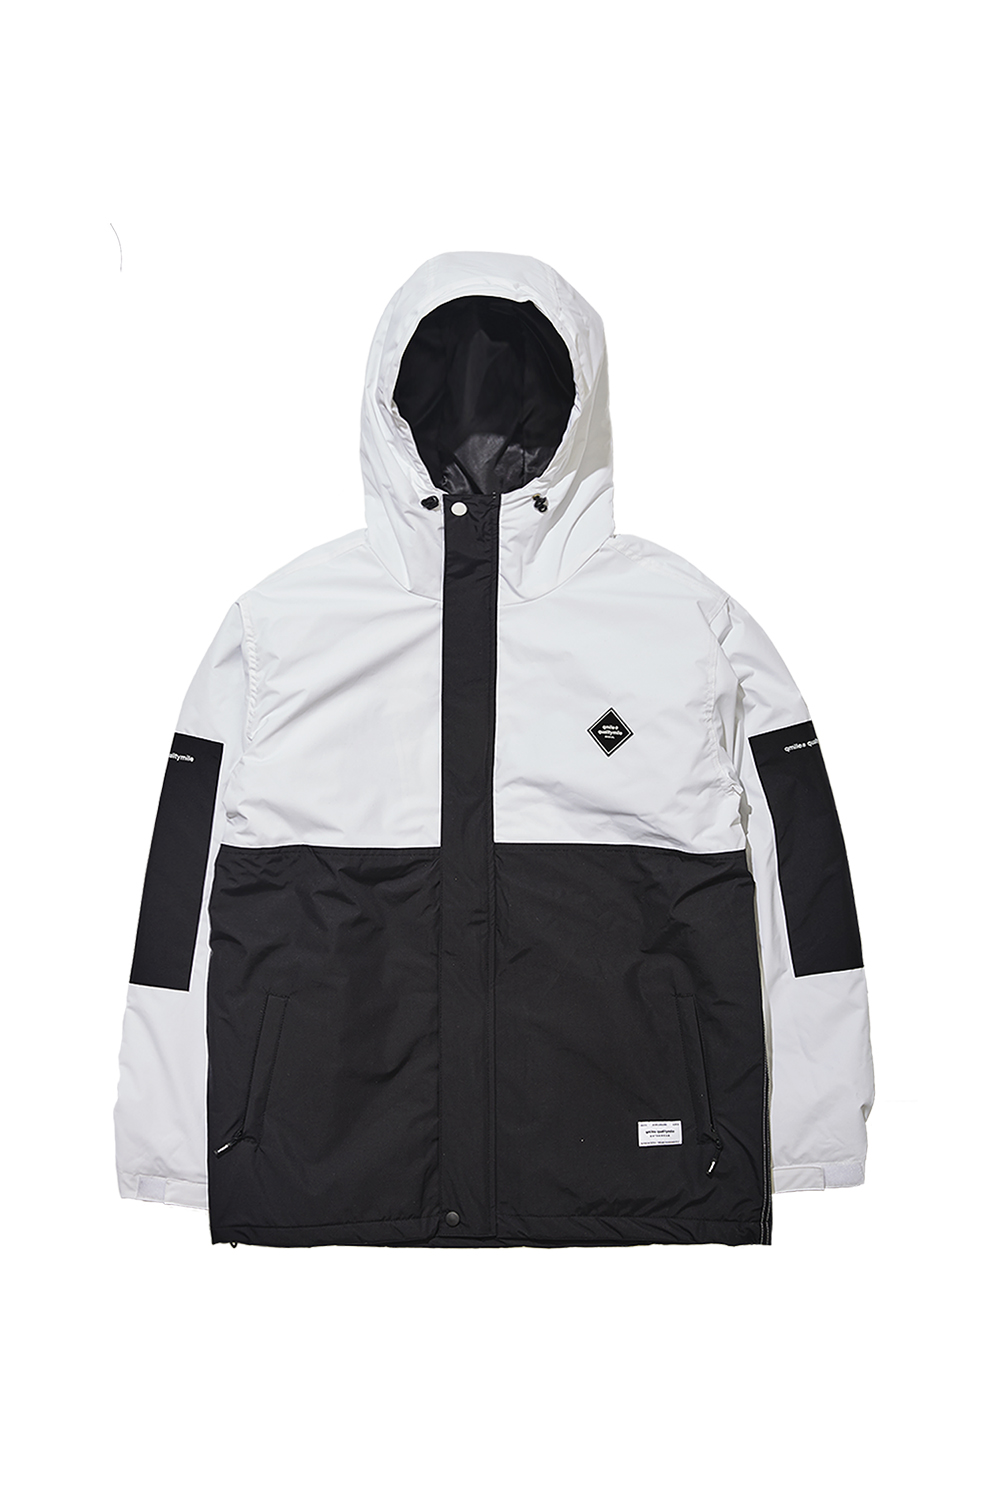 BELOW ZERO JACKET | WHITE